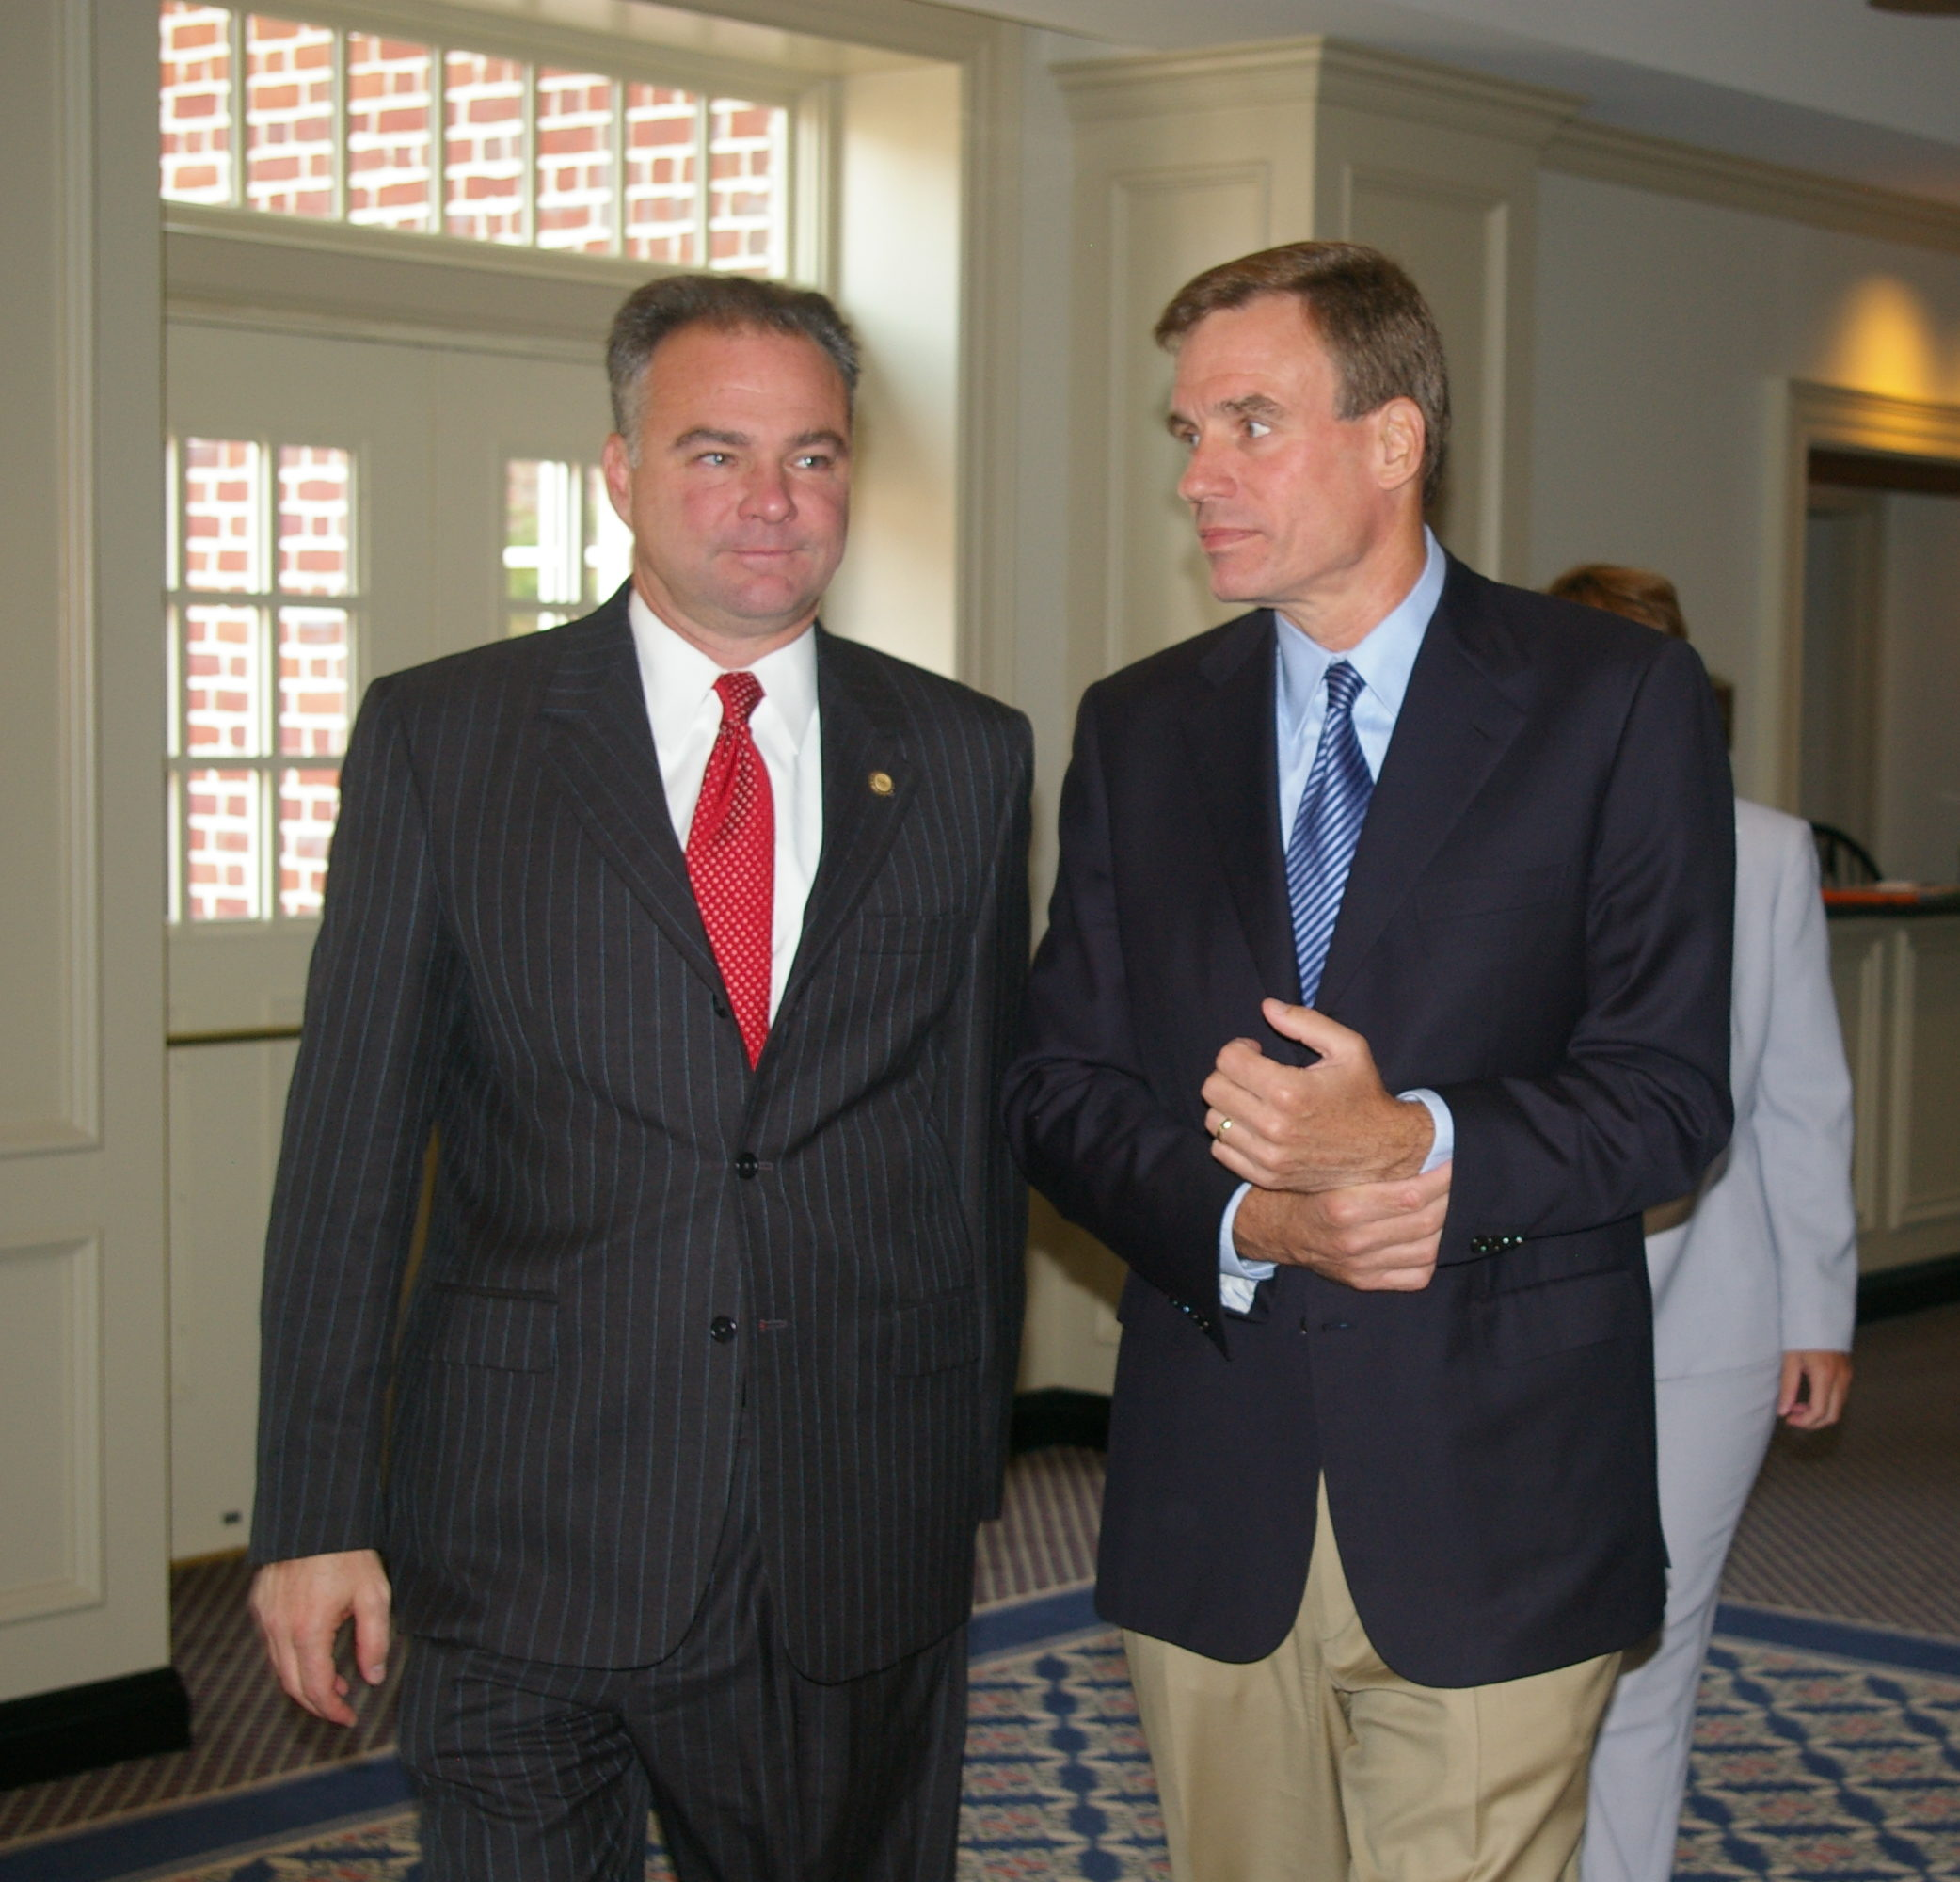 Senators Tim Kaine and Mark Warner